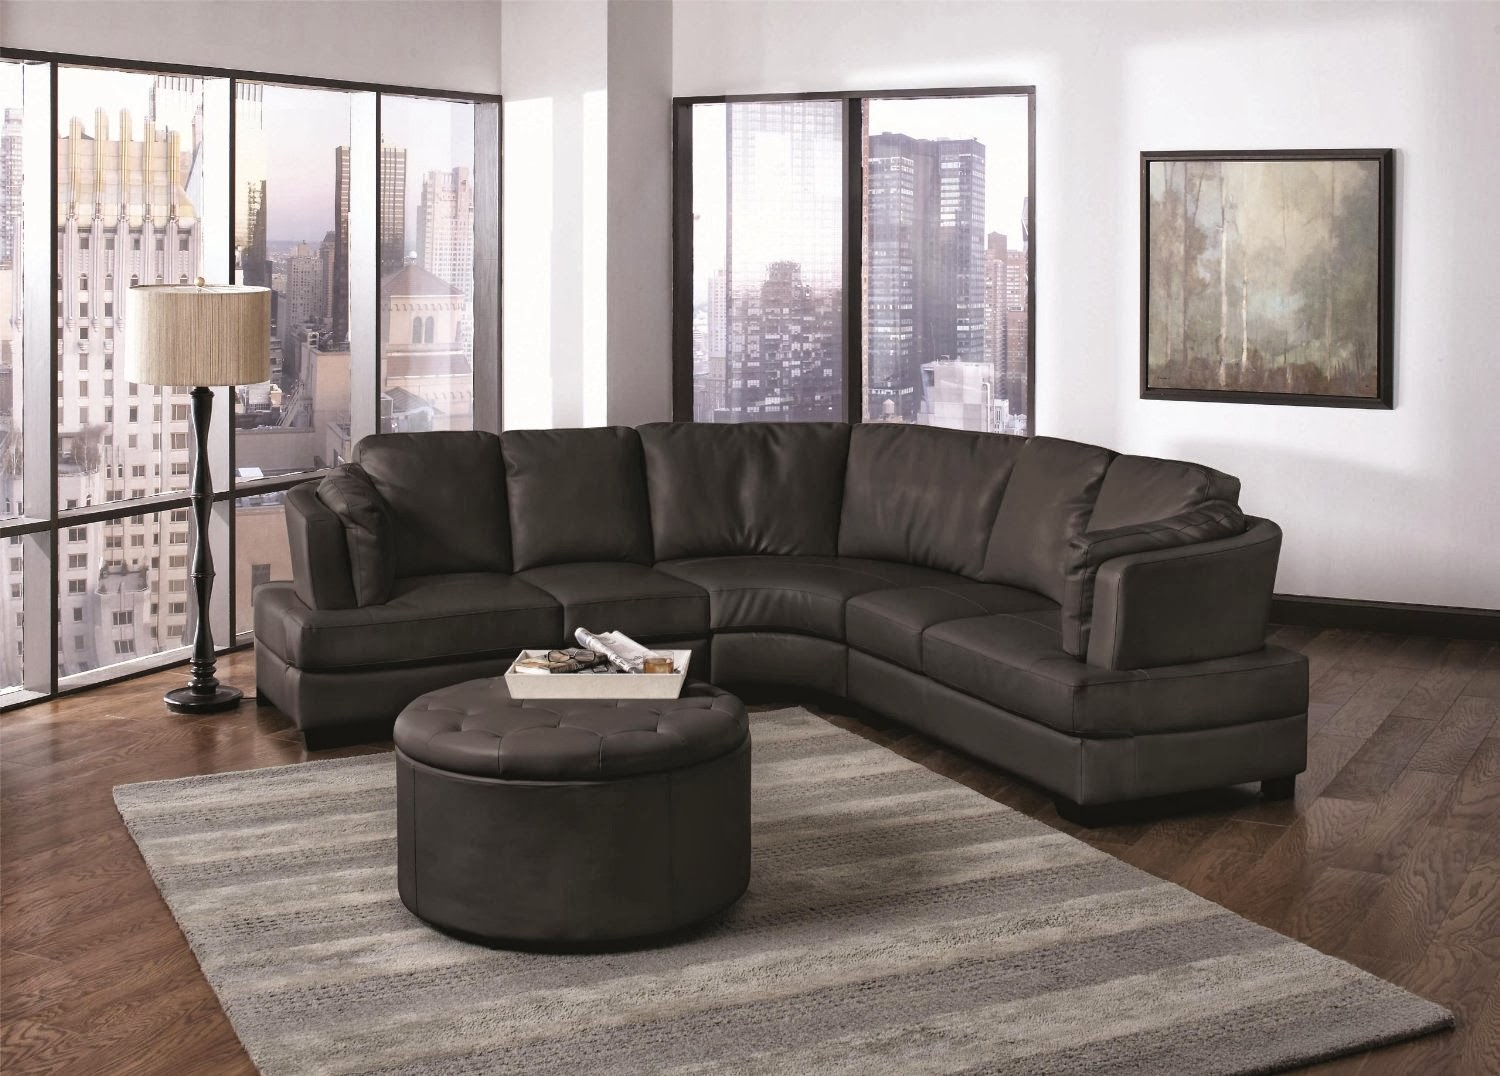 Curved Sectional Sofa Leather Laramie Buy Online September 2013